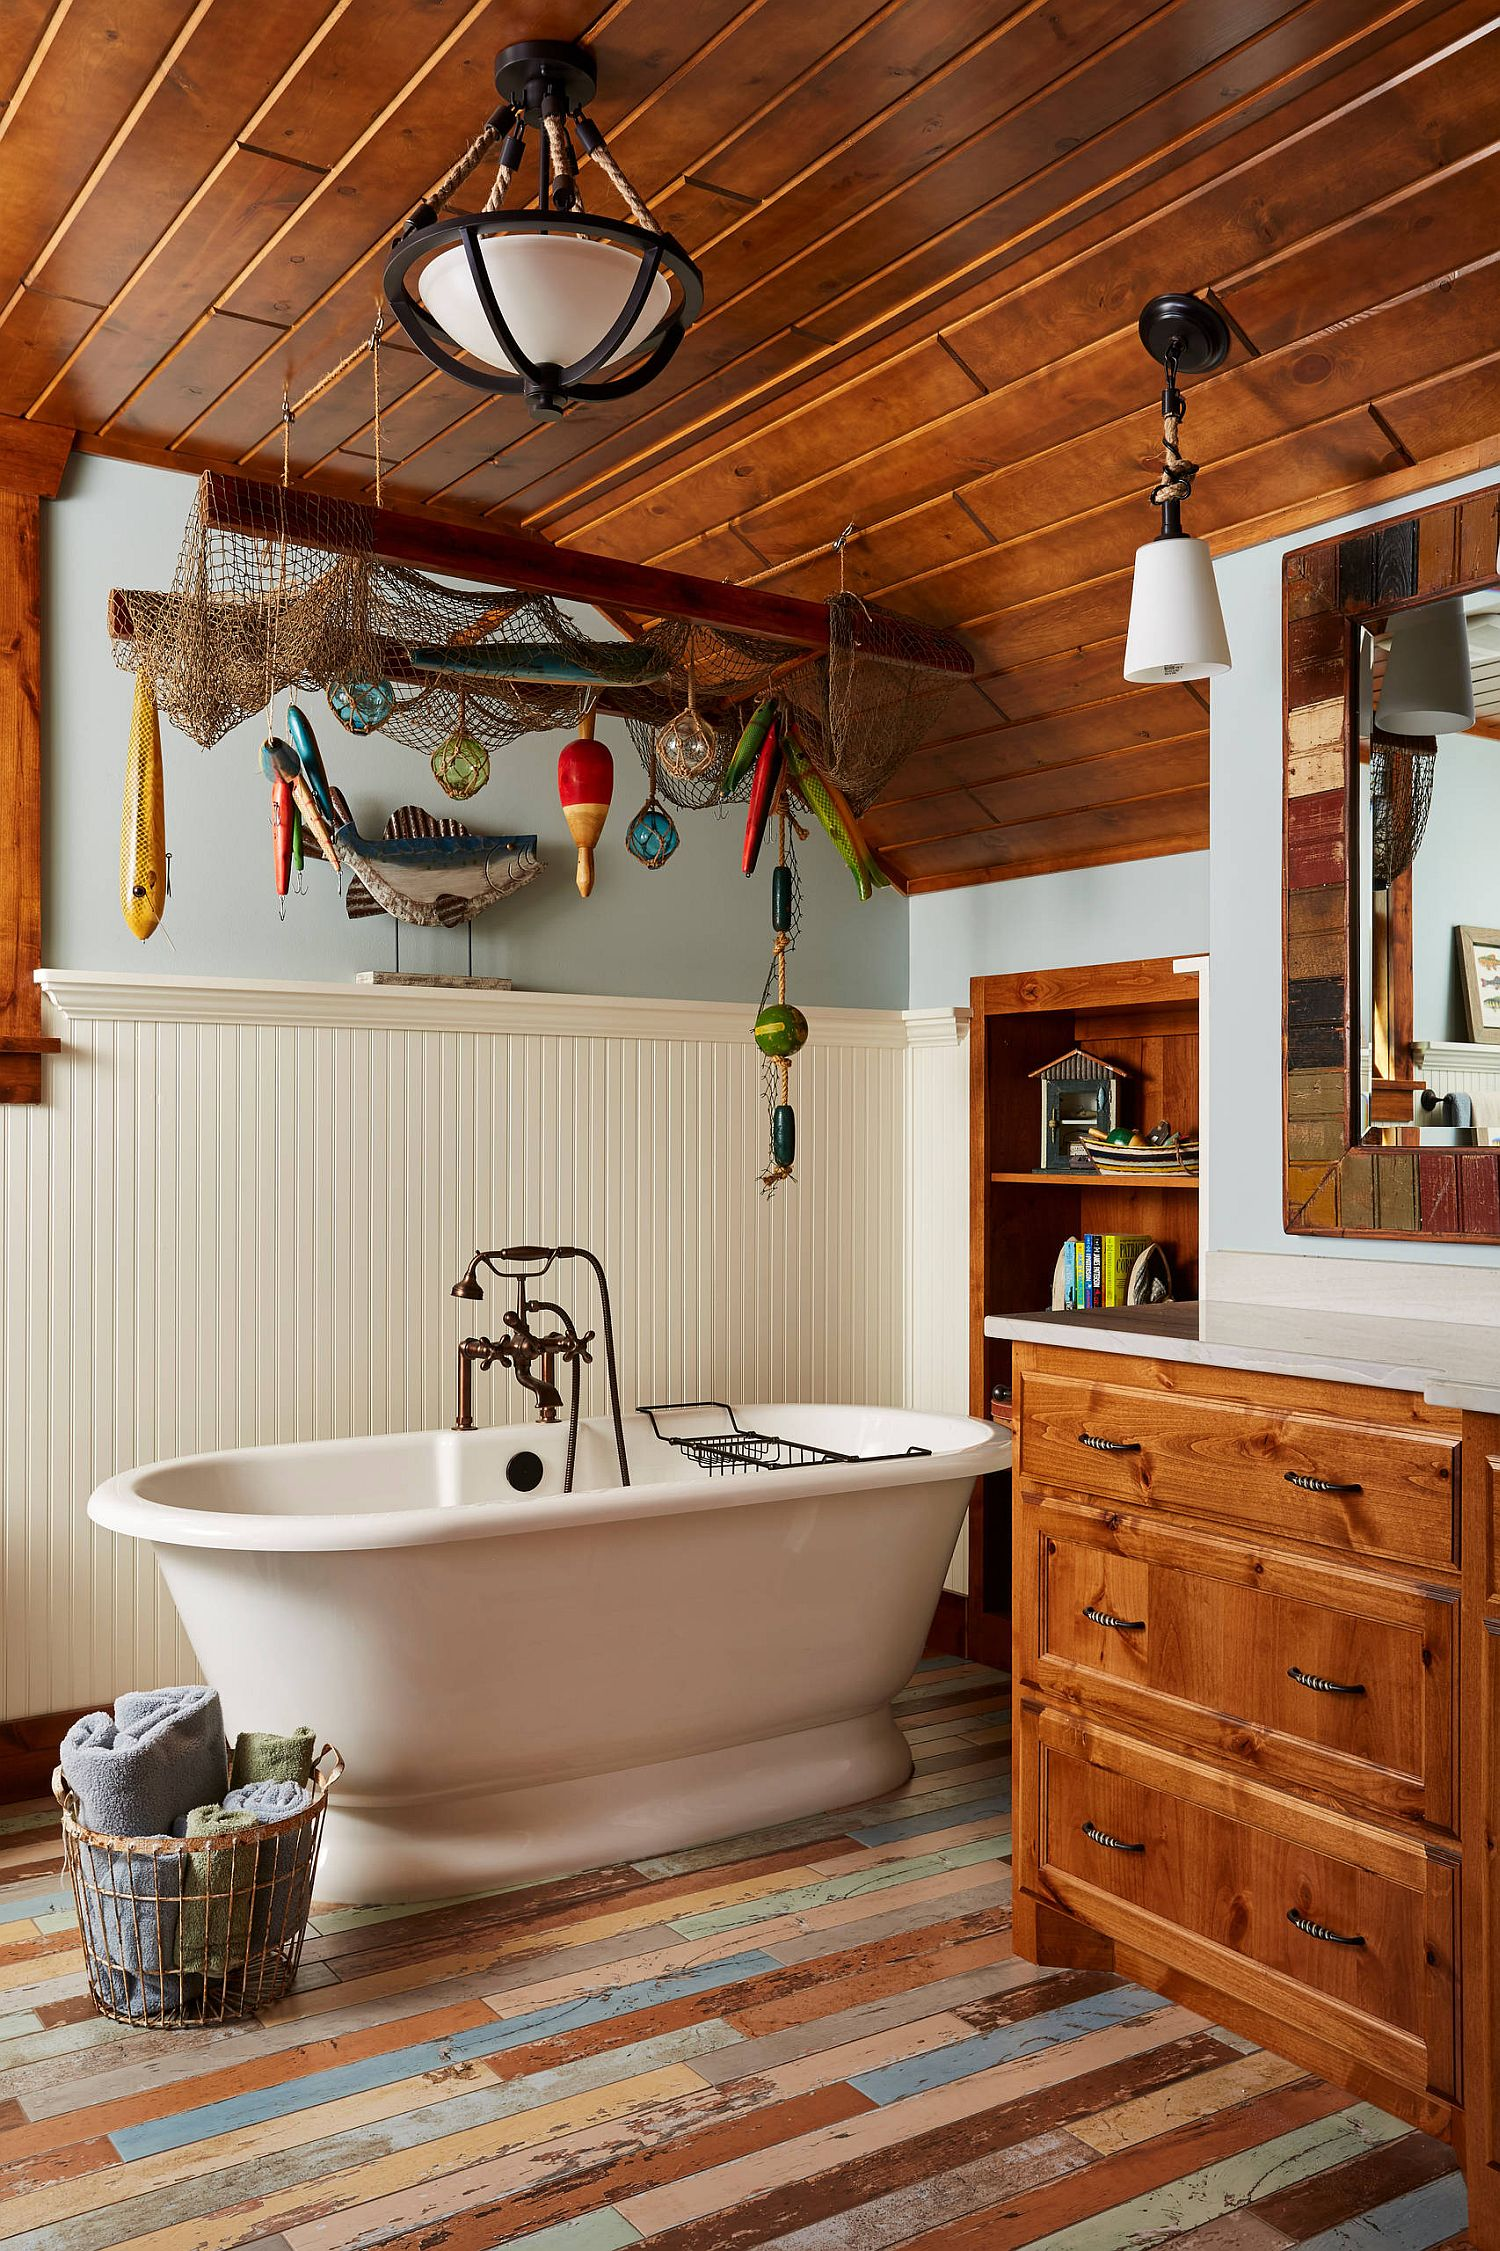 Wood brings warmth to even the bathroom in white with rustic charm